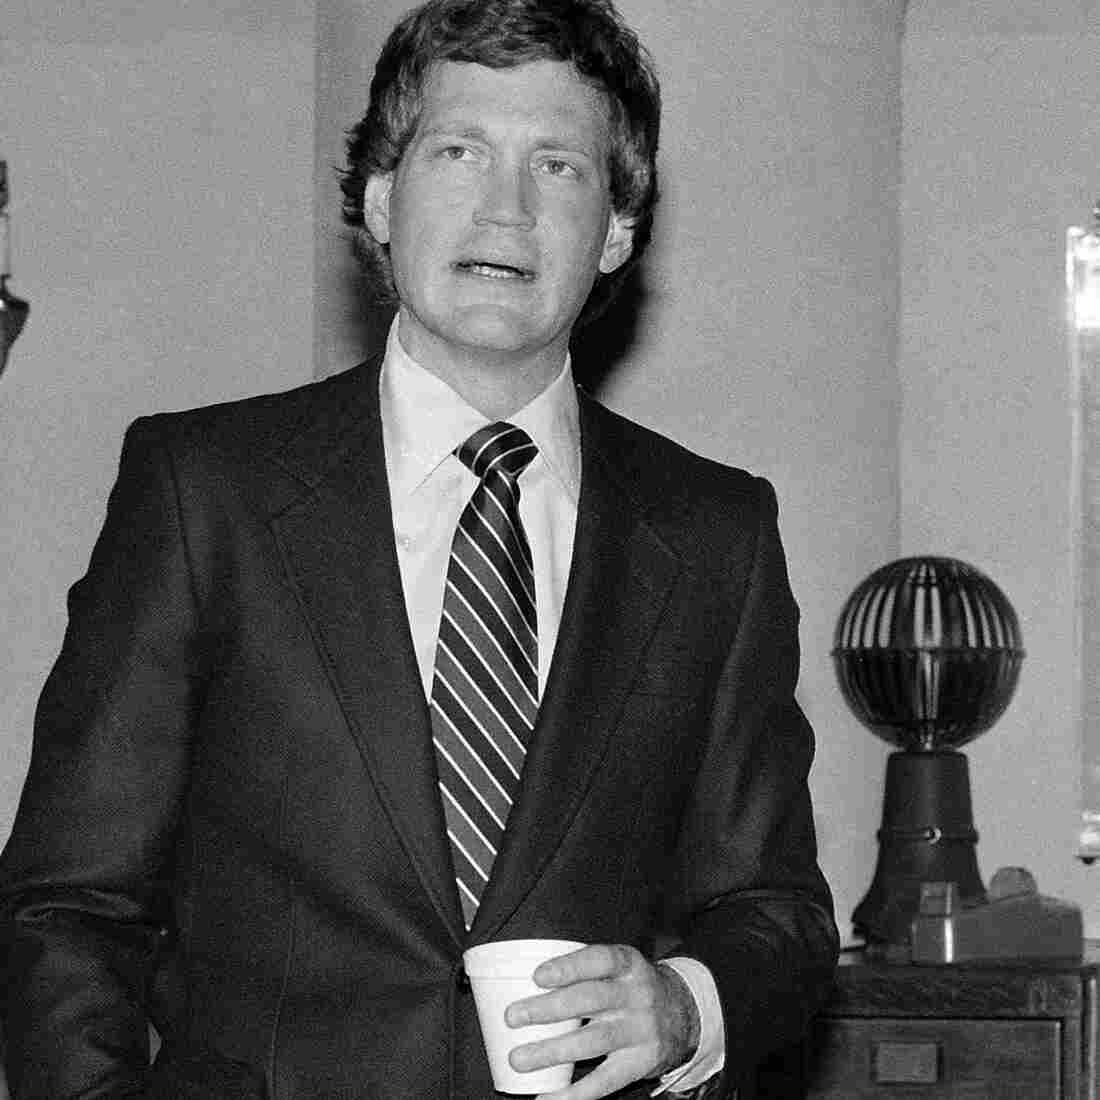 David Letterman, pictured here in January 1982, premiered Late Night With David Letterman just a few months after his Fresh Air interview.